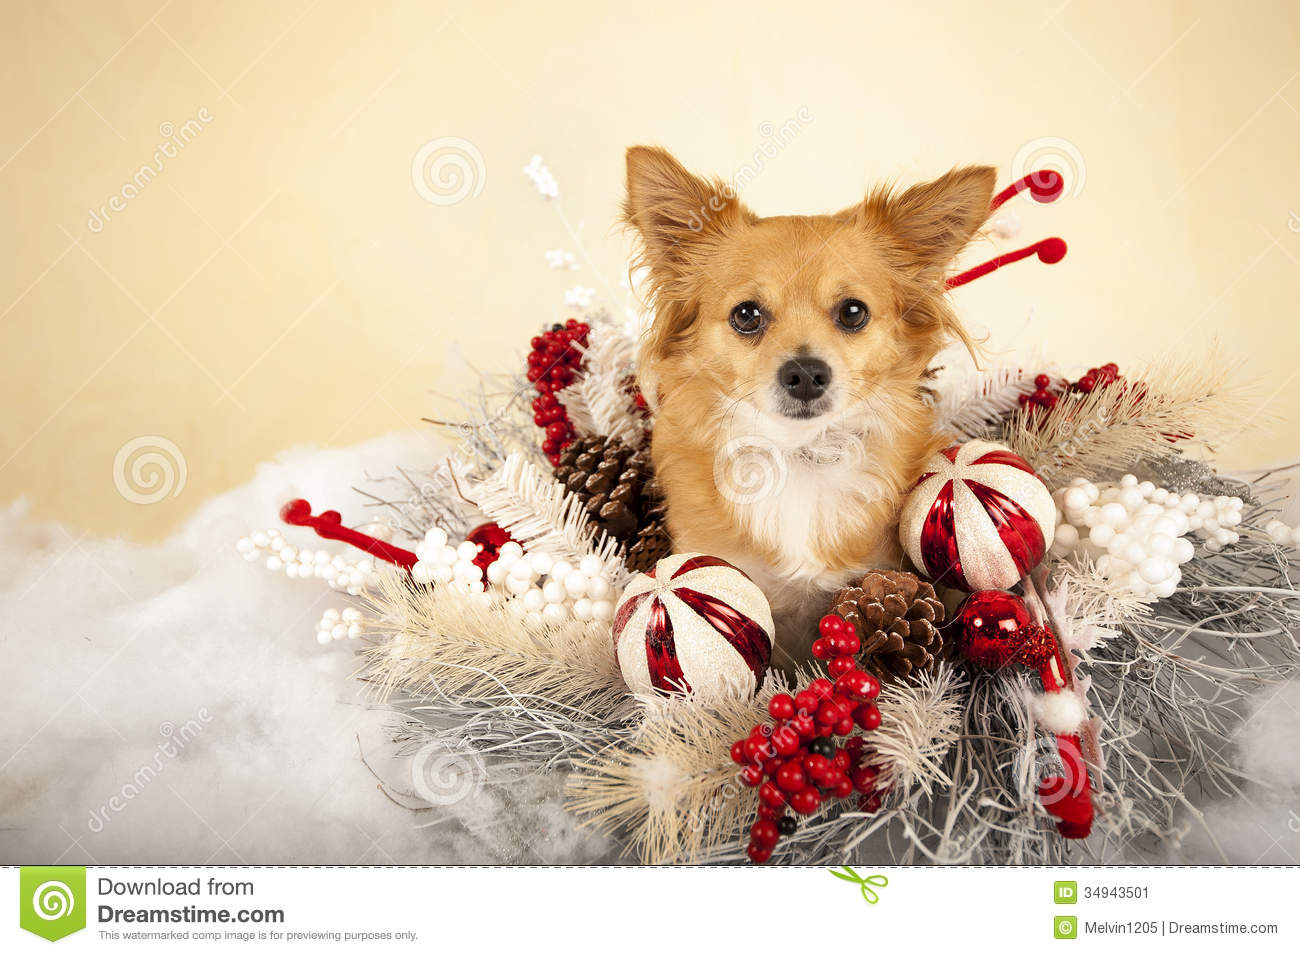 Cute Christmas Card Pictures With Dogs